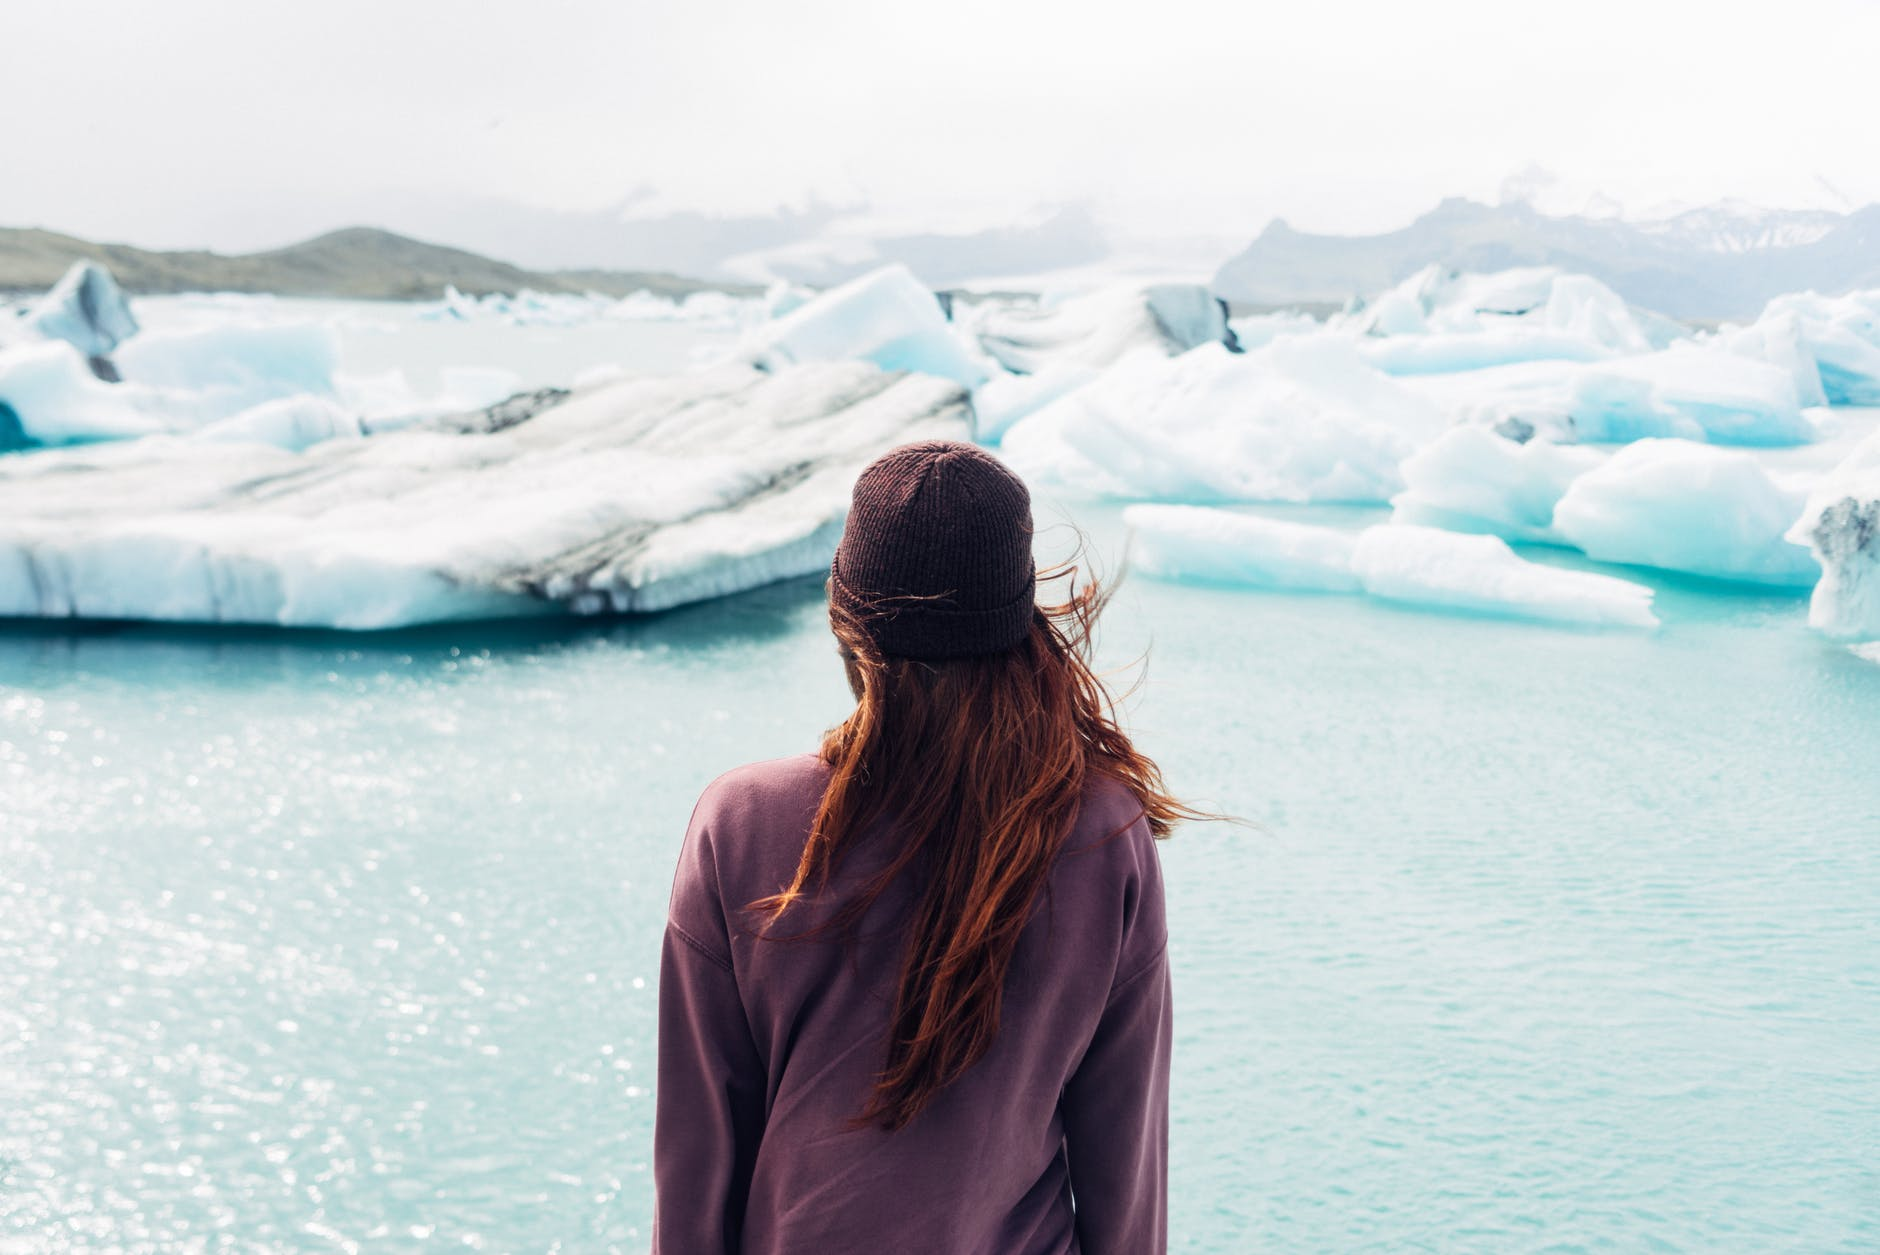 woman wearing purple shirt overlooking at body of water and snow covered field